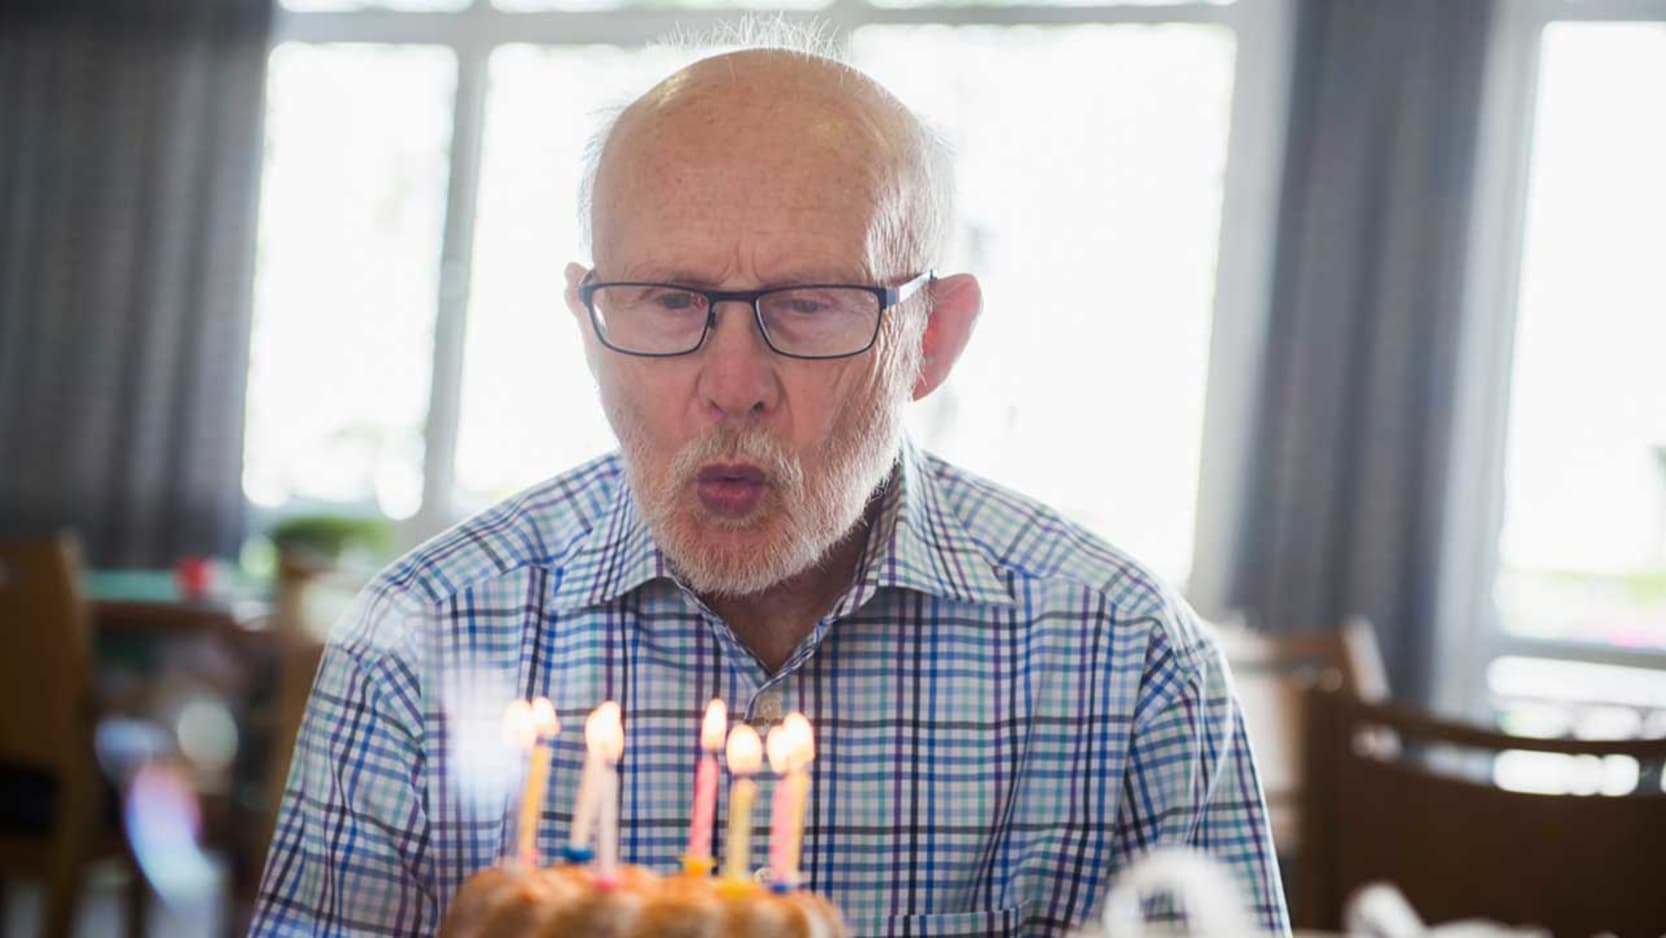 A senior man blowing out candles on a birthday cake.